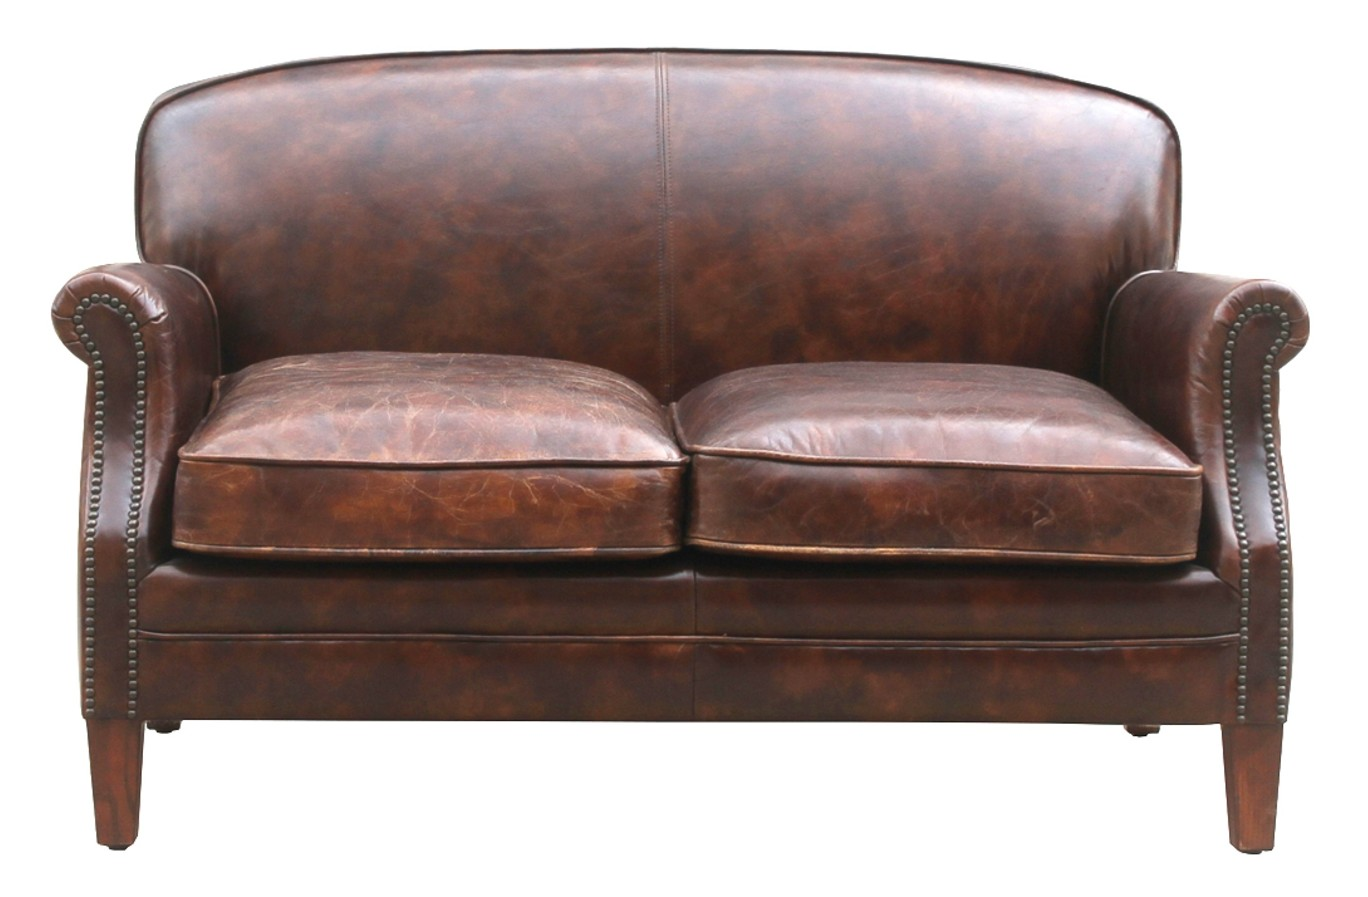 Prime Camber Vintage Distressed Leather Sofa Pdpeps Interior Chair Design Pdpepsorg